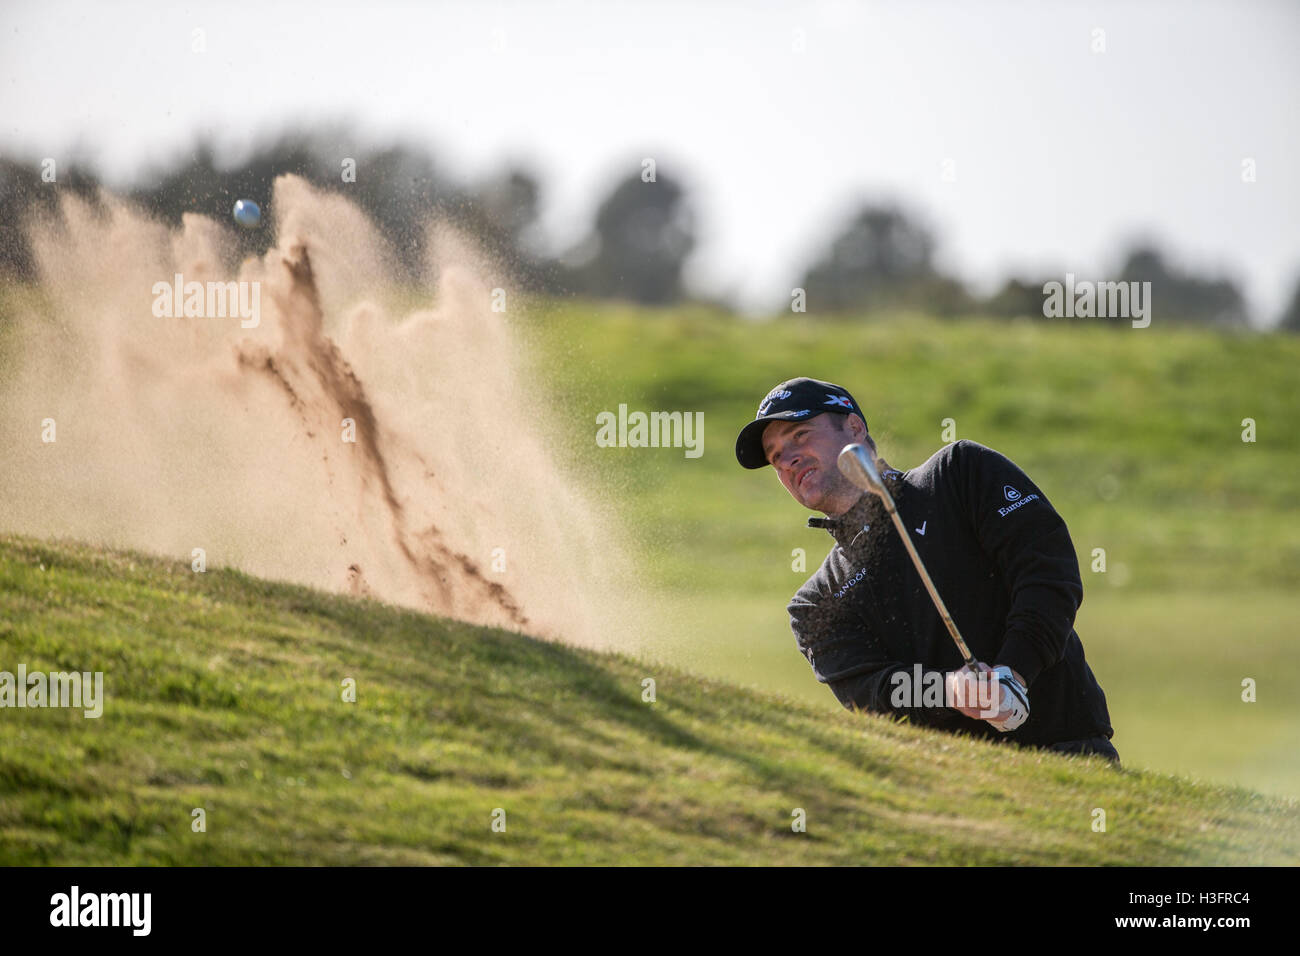 Scotland's Marc Warren plays from the green side bunker at the 14th hole during day three of the Alfred Dunhill Stock Foto